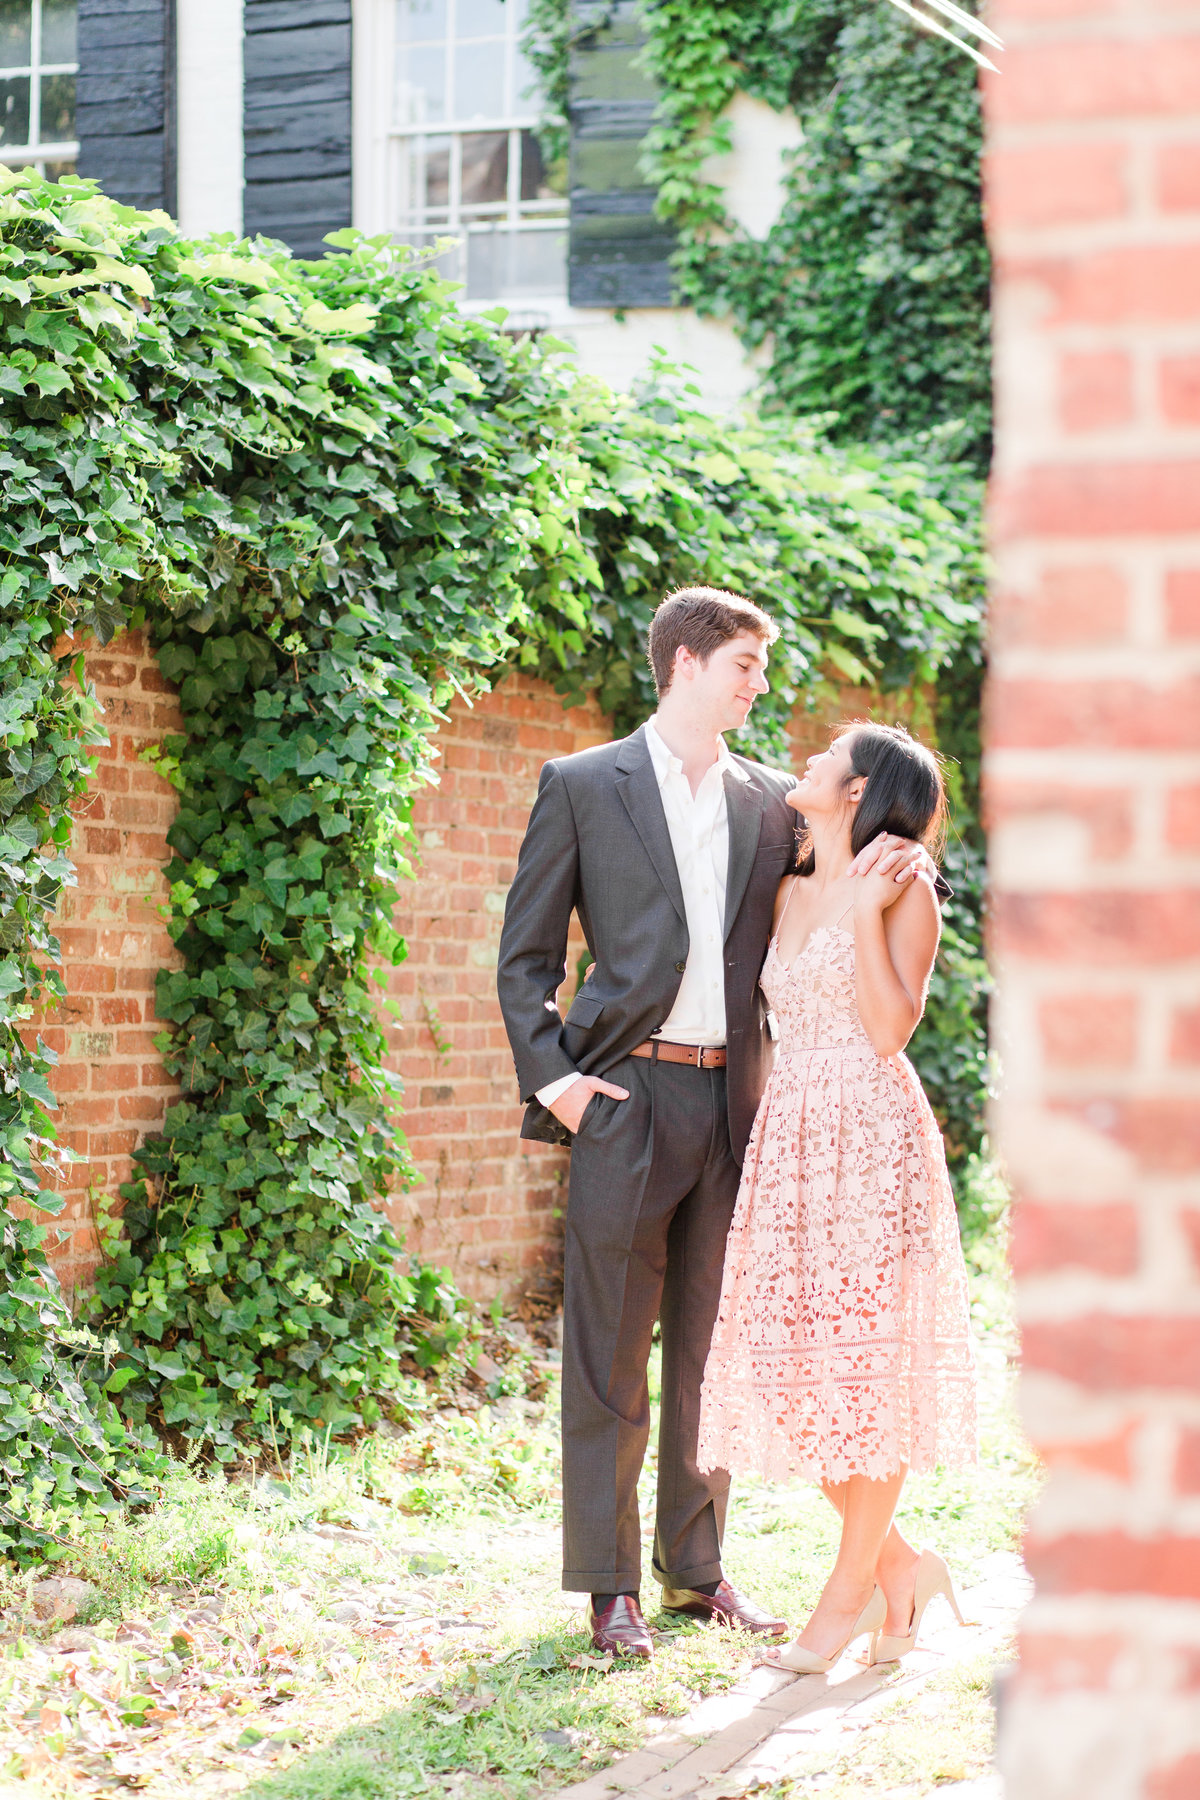 old-town-alexandria-virginia-engagement-photos-jackie-taylor-bethanne-arthur-photography-photos-99